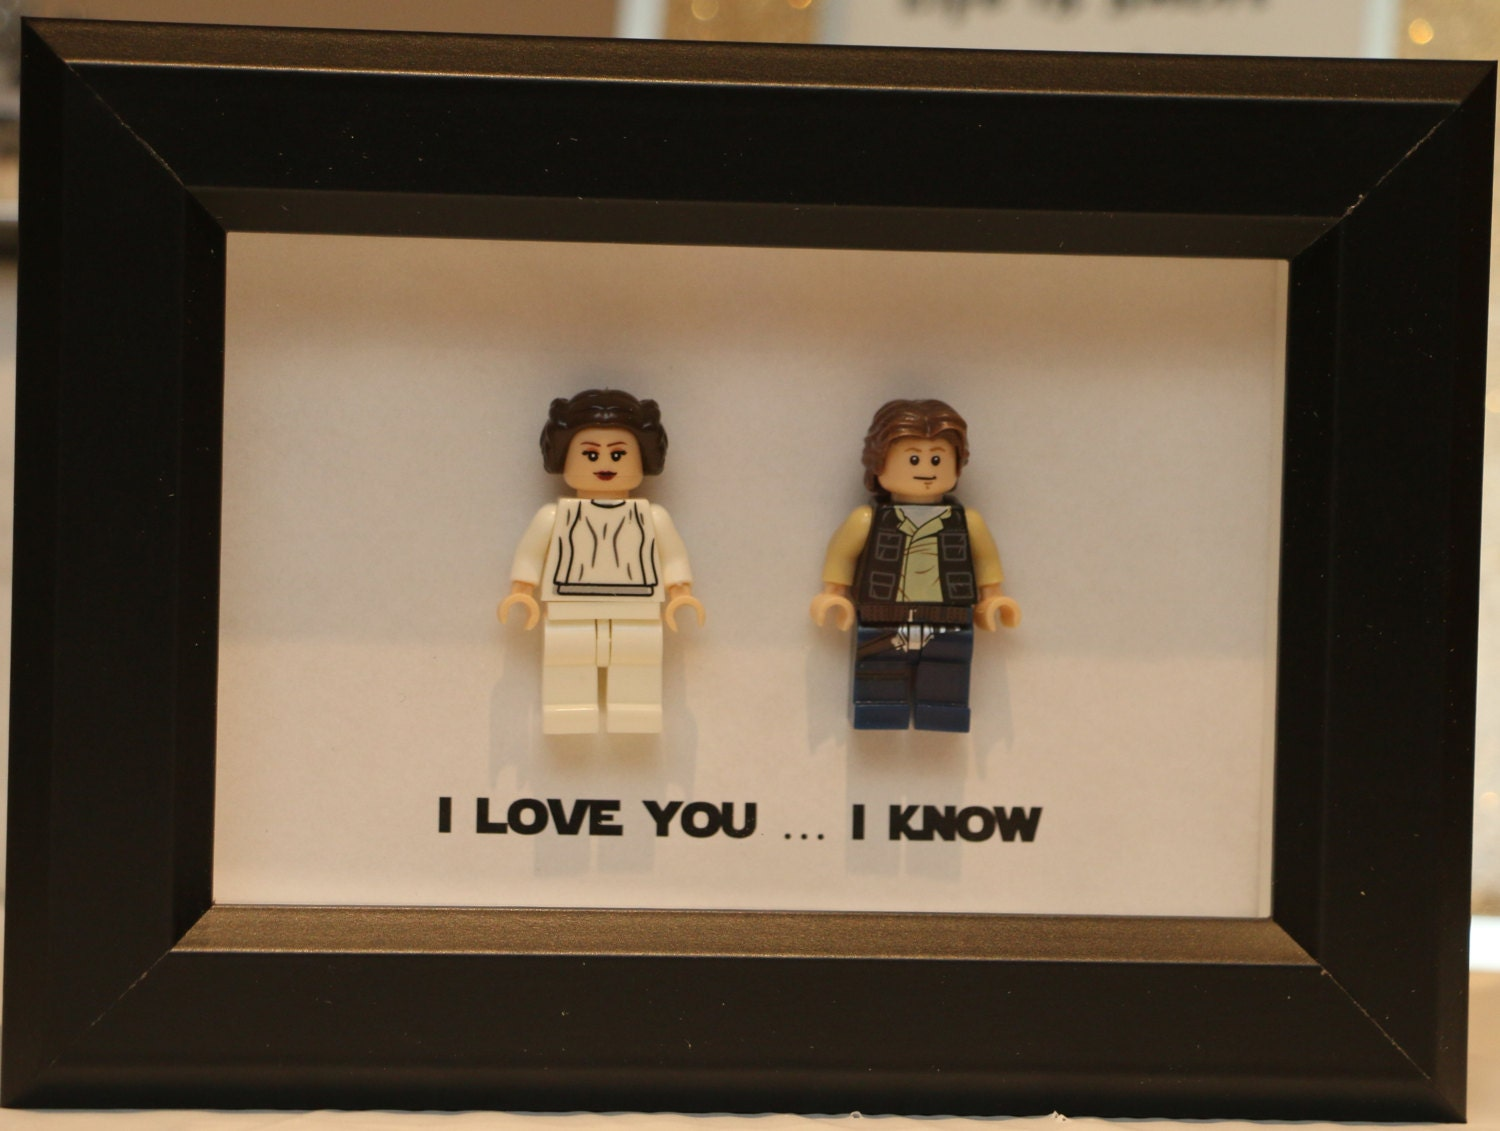 lego i love you i know framed han leia star wars mini figures millenium falcon minifigures wedding anniversary personalized uk usa canada